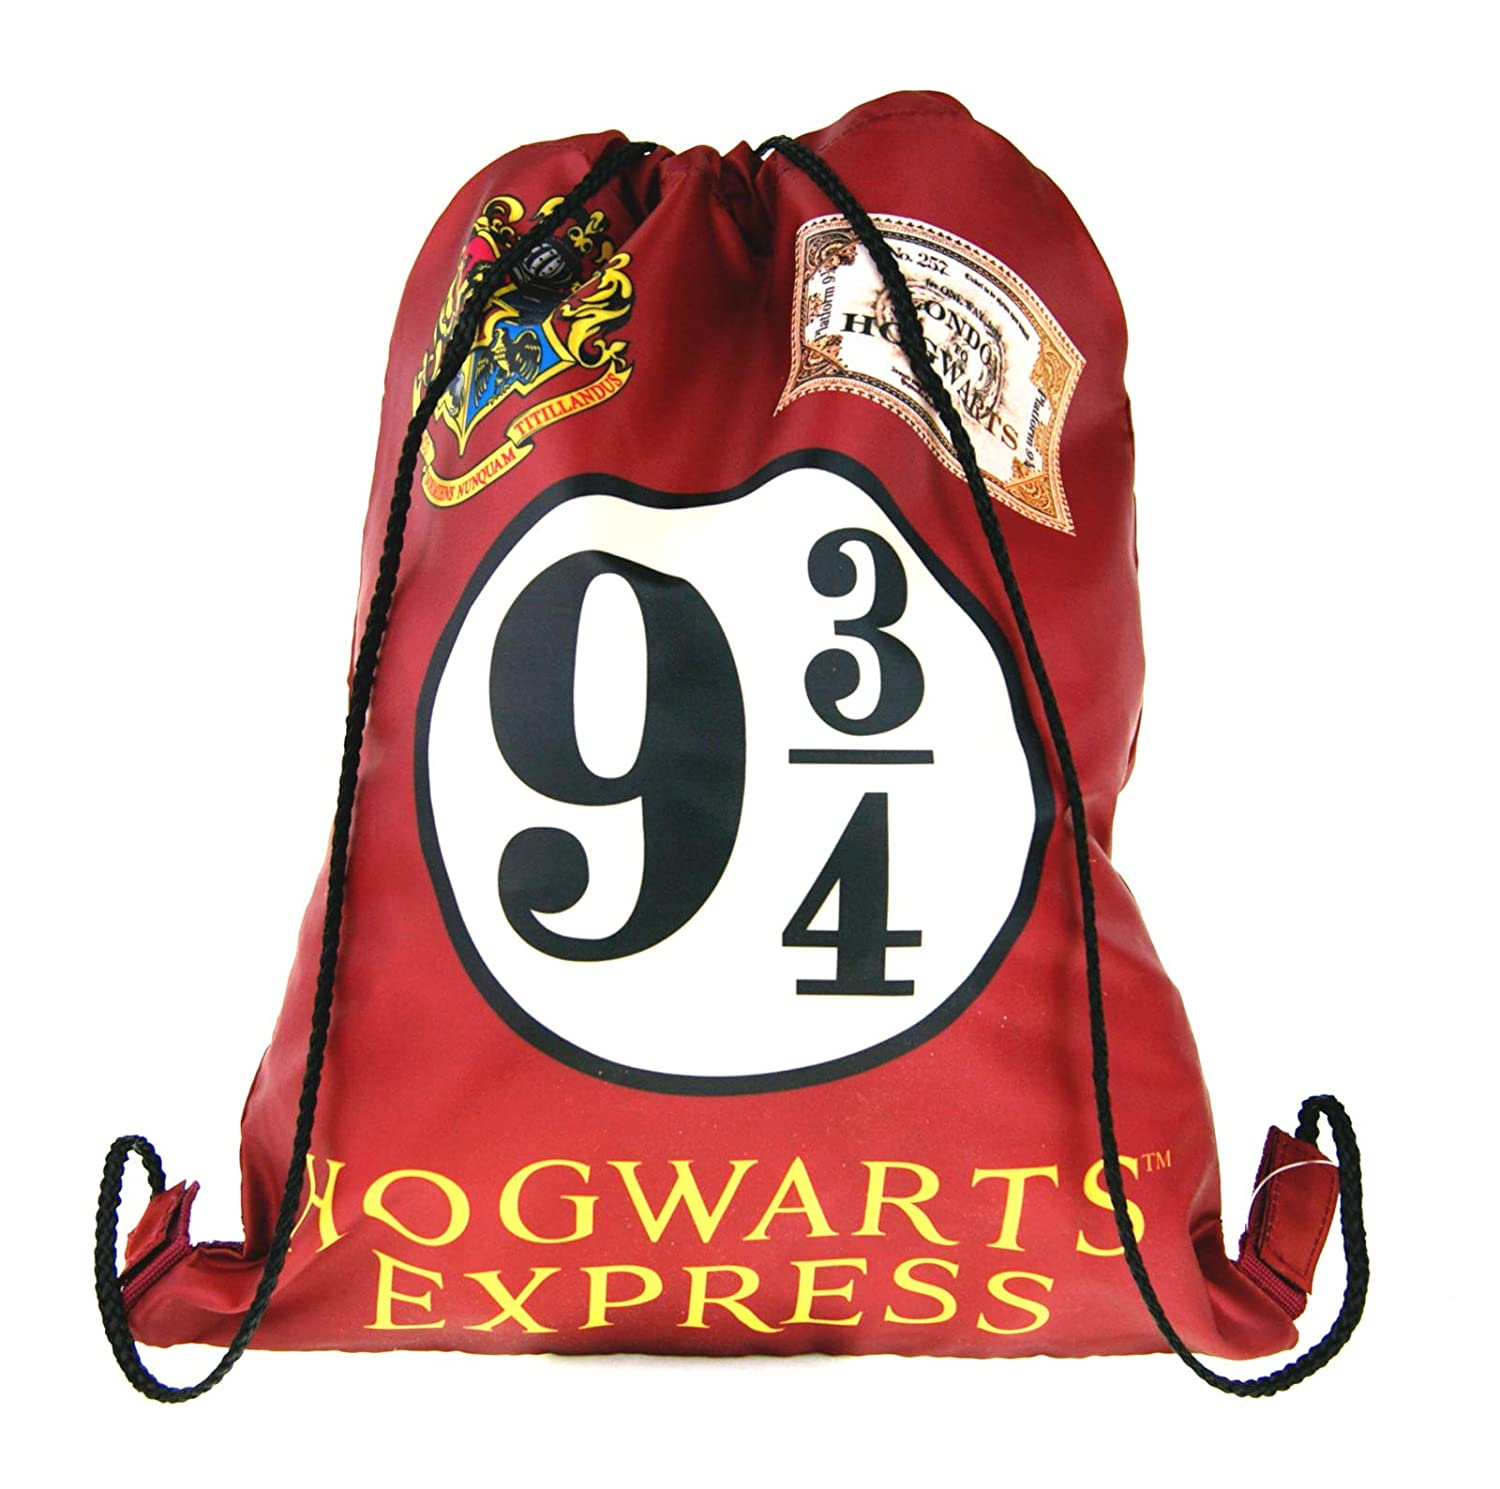 Harry Potter Gym Bag - 9 3/4 Shoe Directory LB102170